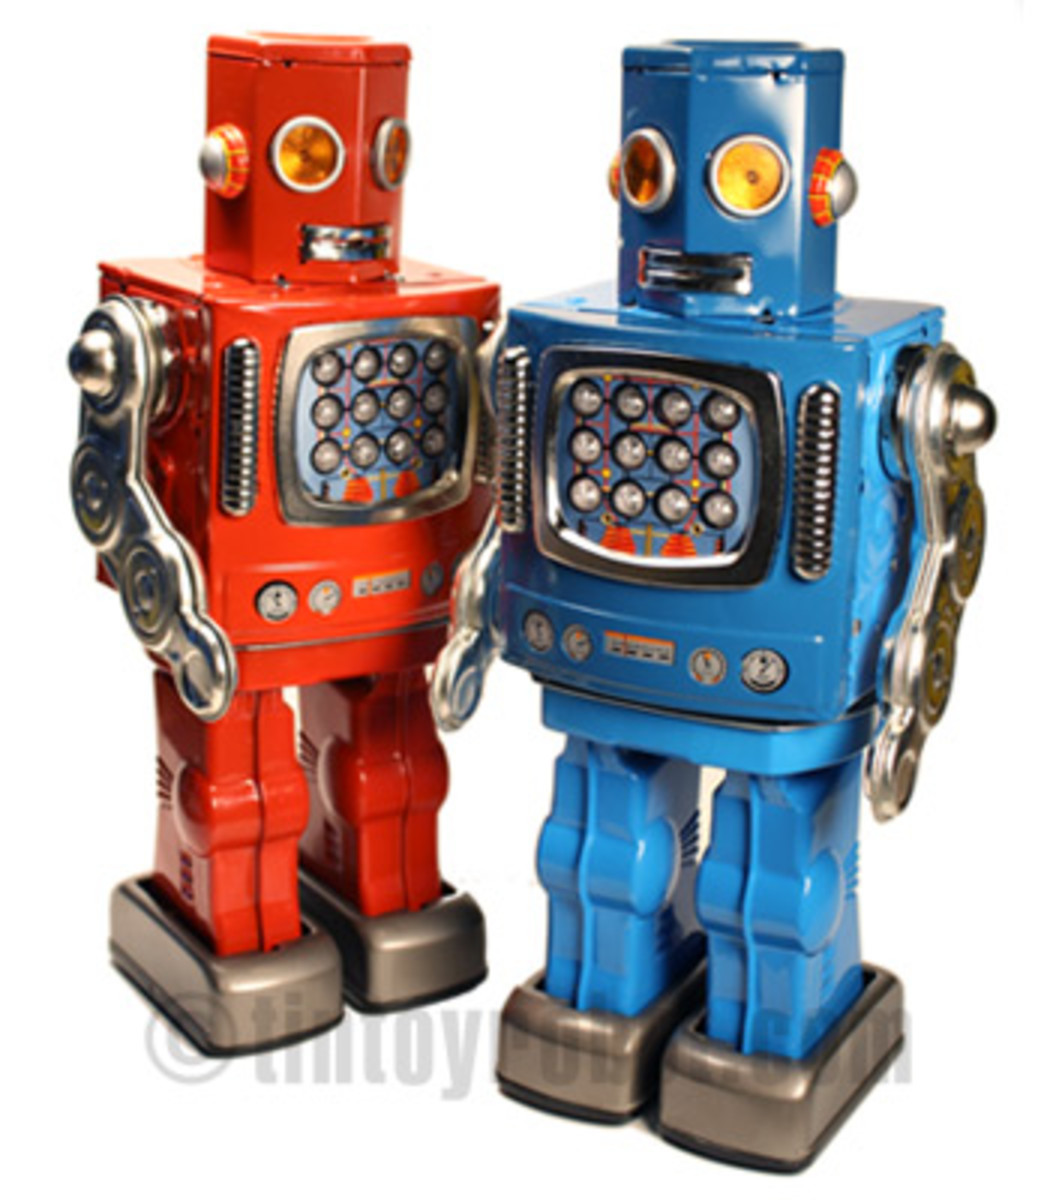 Modern tin robots in a retro style. From tinytoyrobots.com